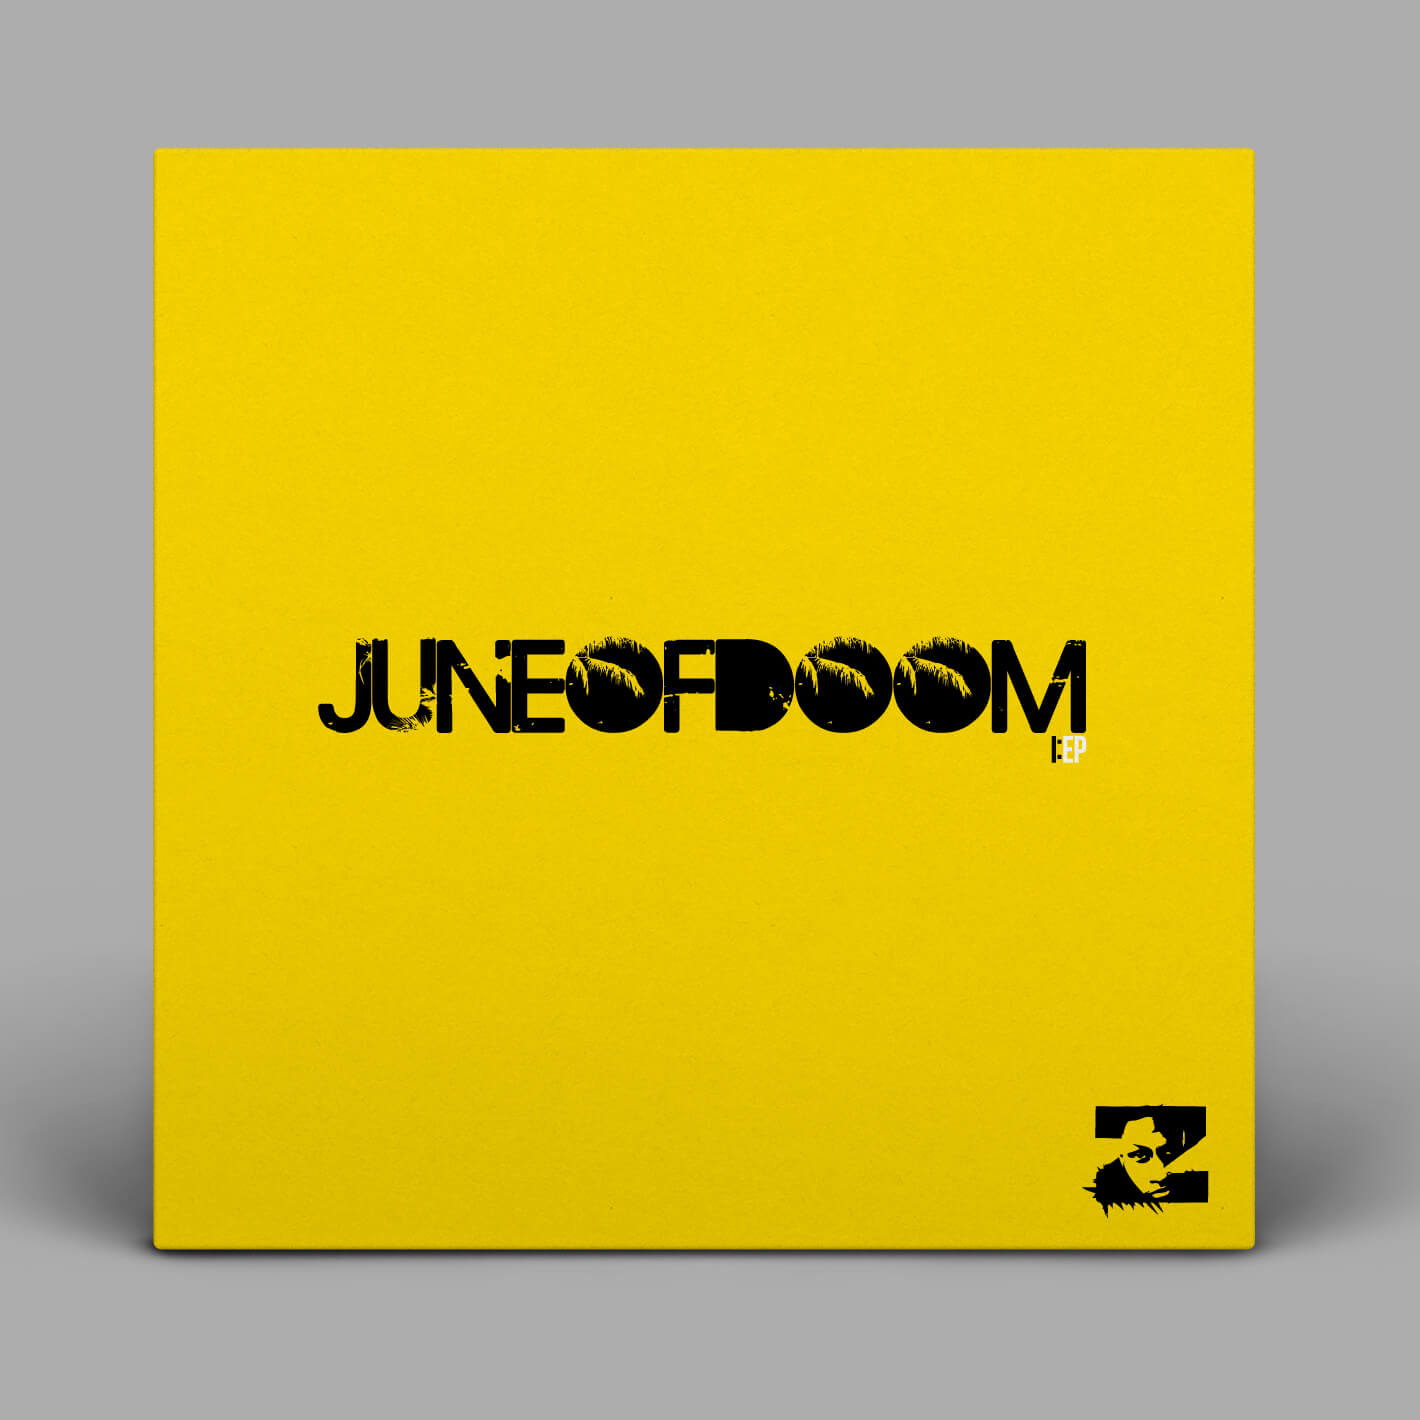 JUNEOFDOOM, I:EP: Cover